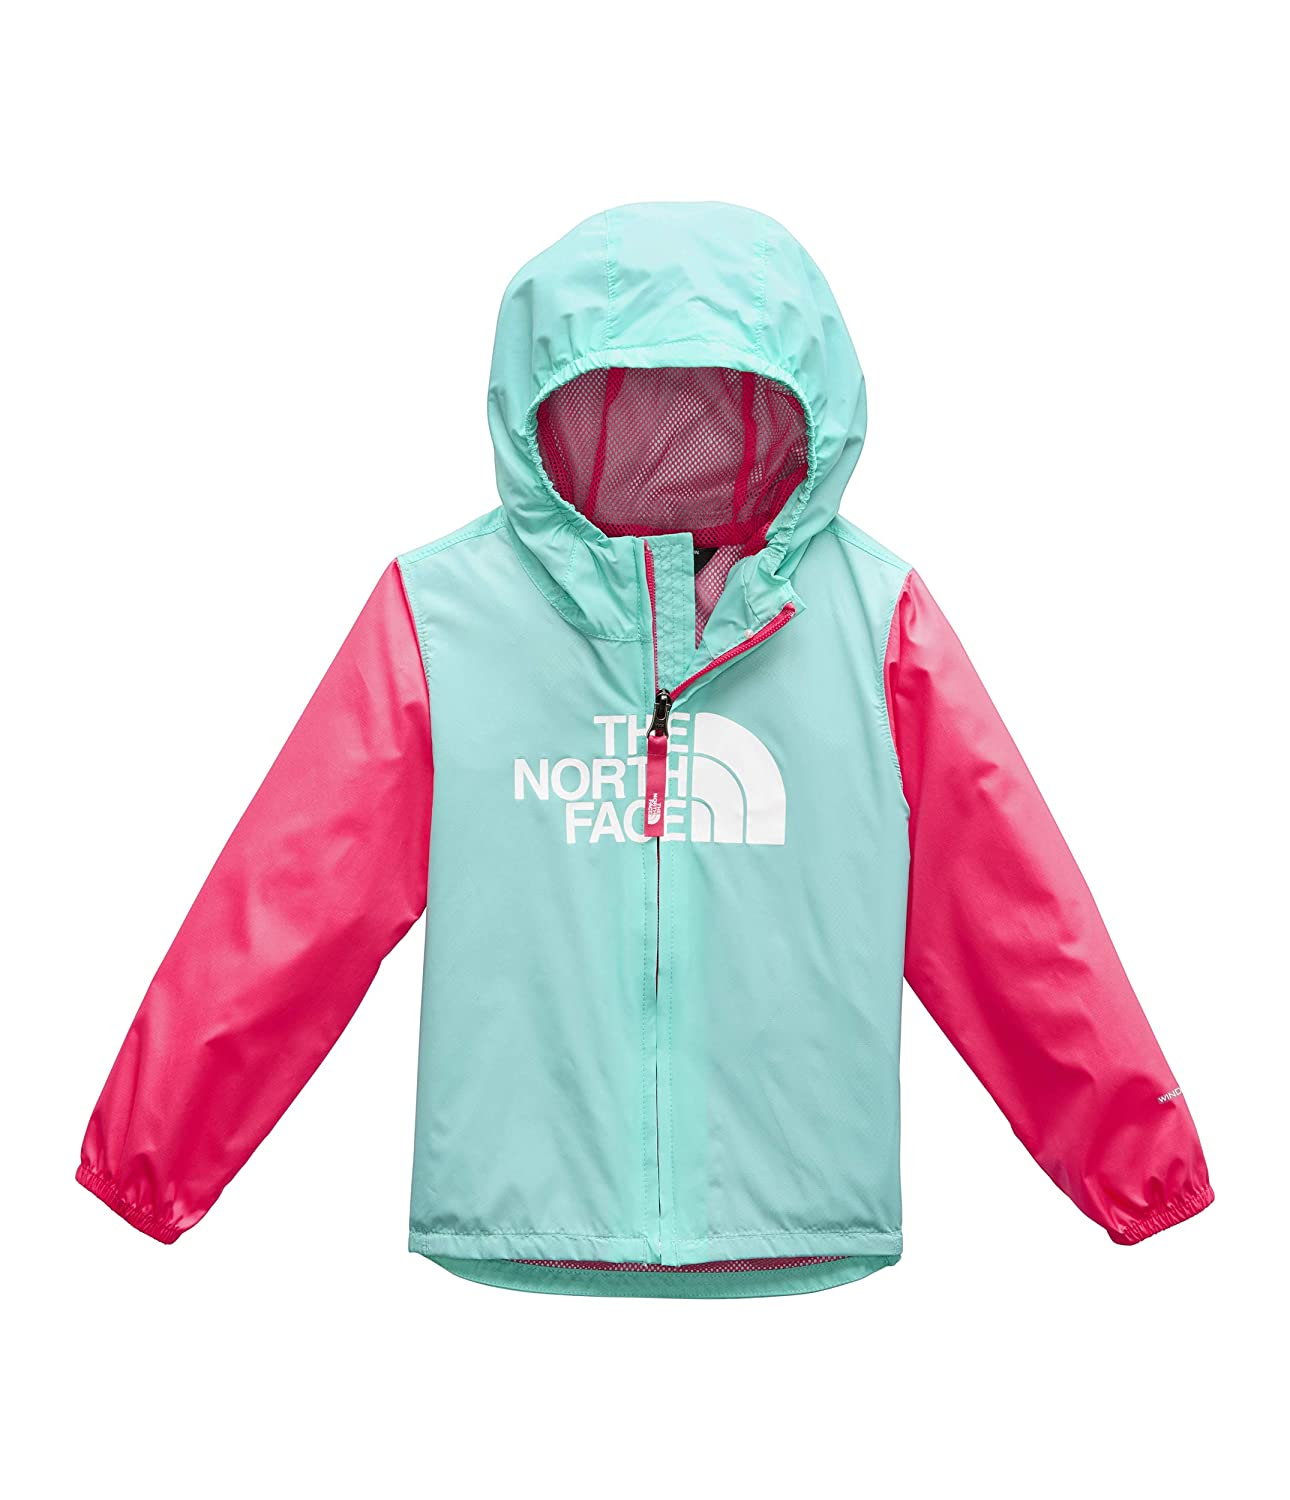 93668f167 The North Face Kids Baby Boy's Flurry Wind Jacket (Toddler)